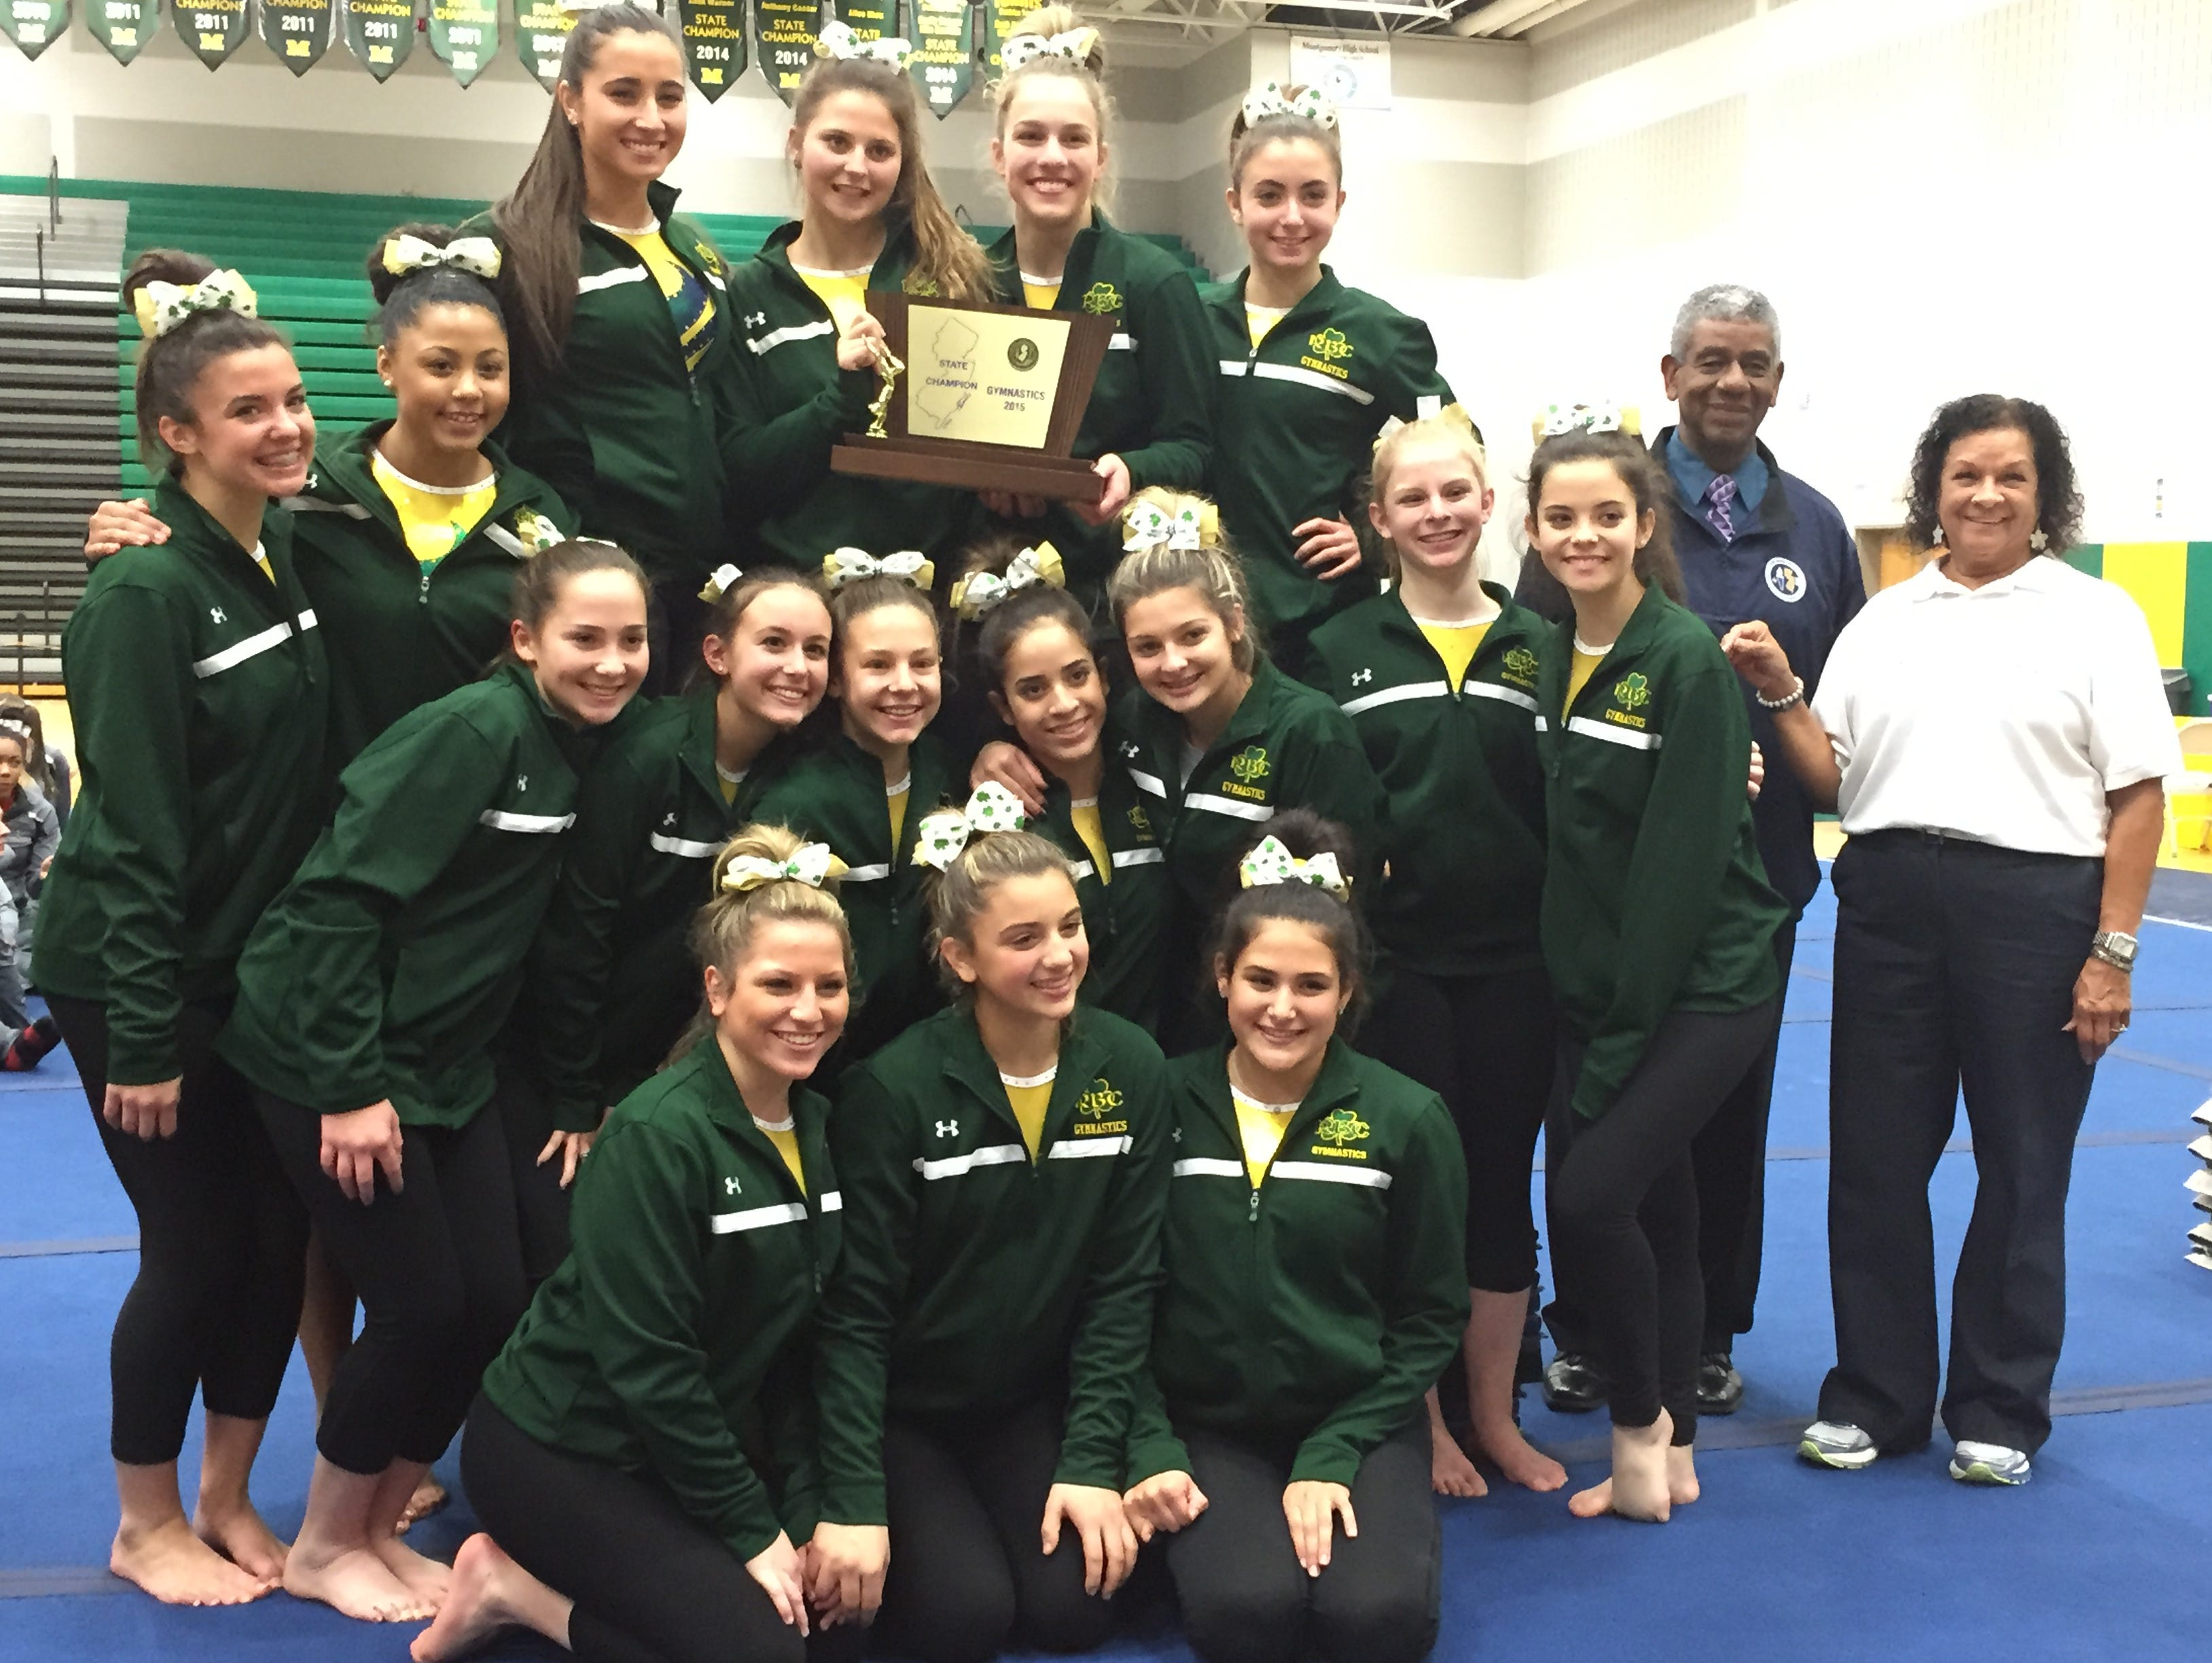 Red Bank Catholic poses with the NJSIAA gymnastics team trophy.